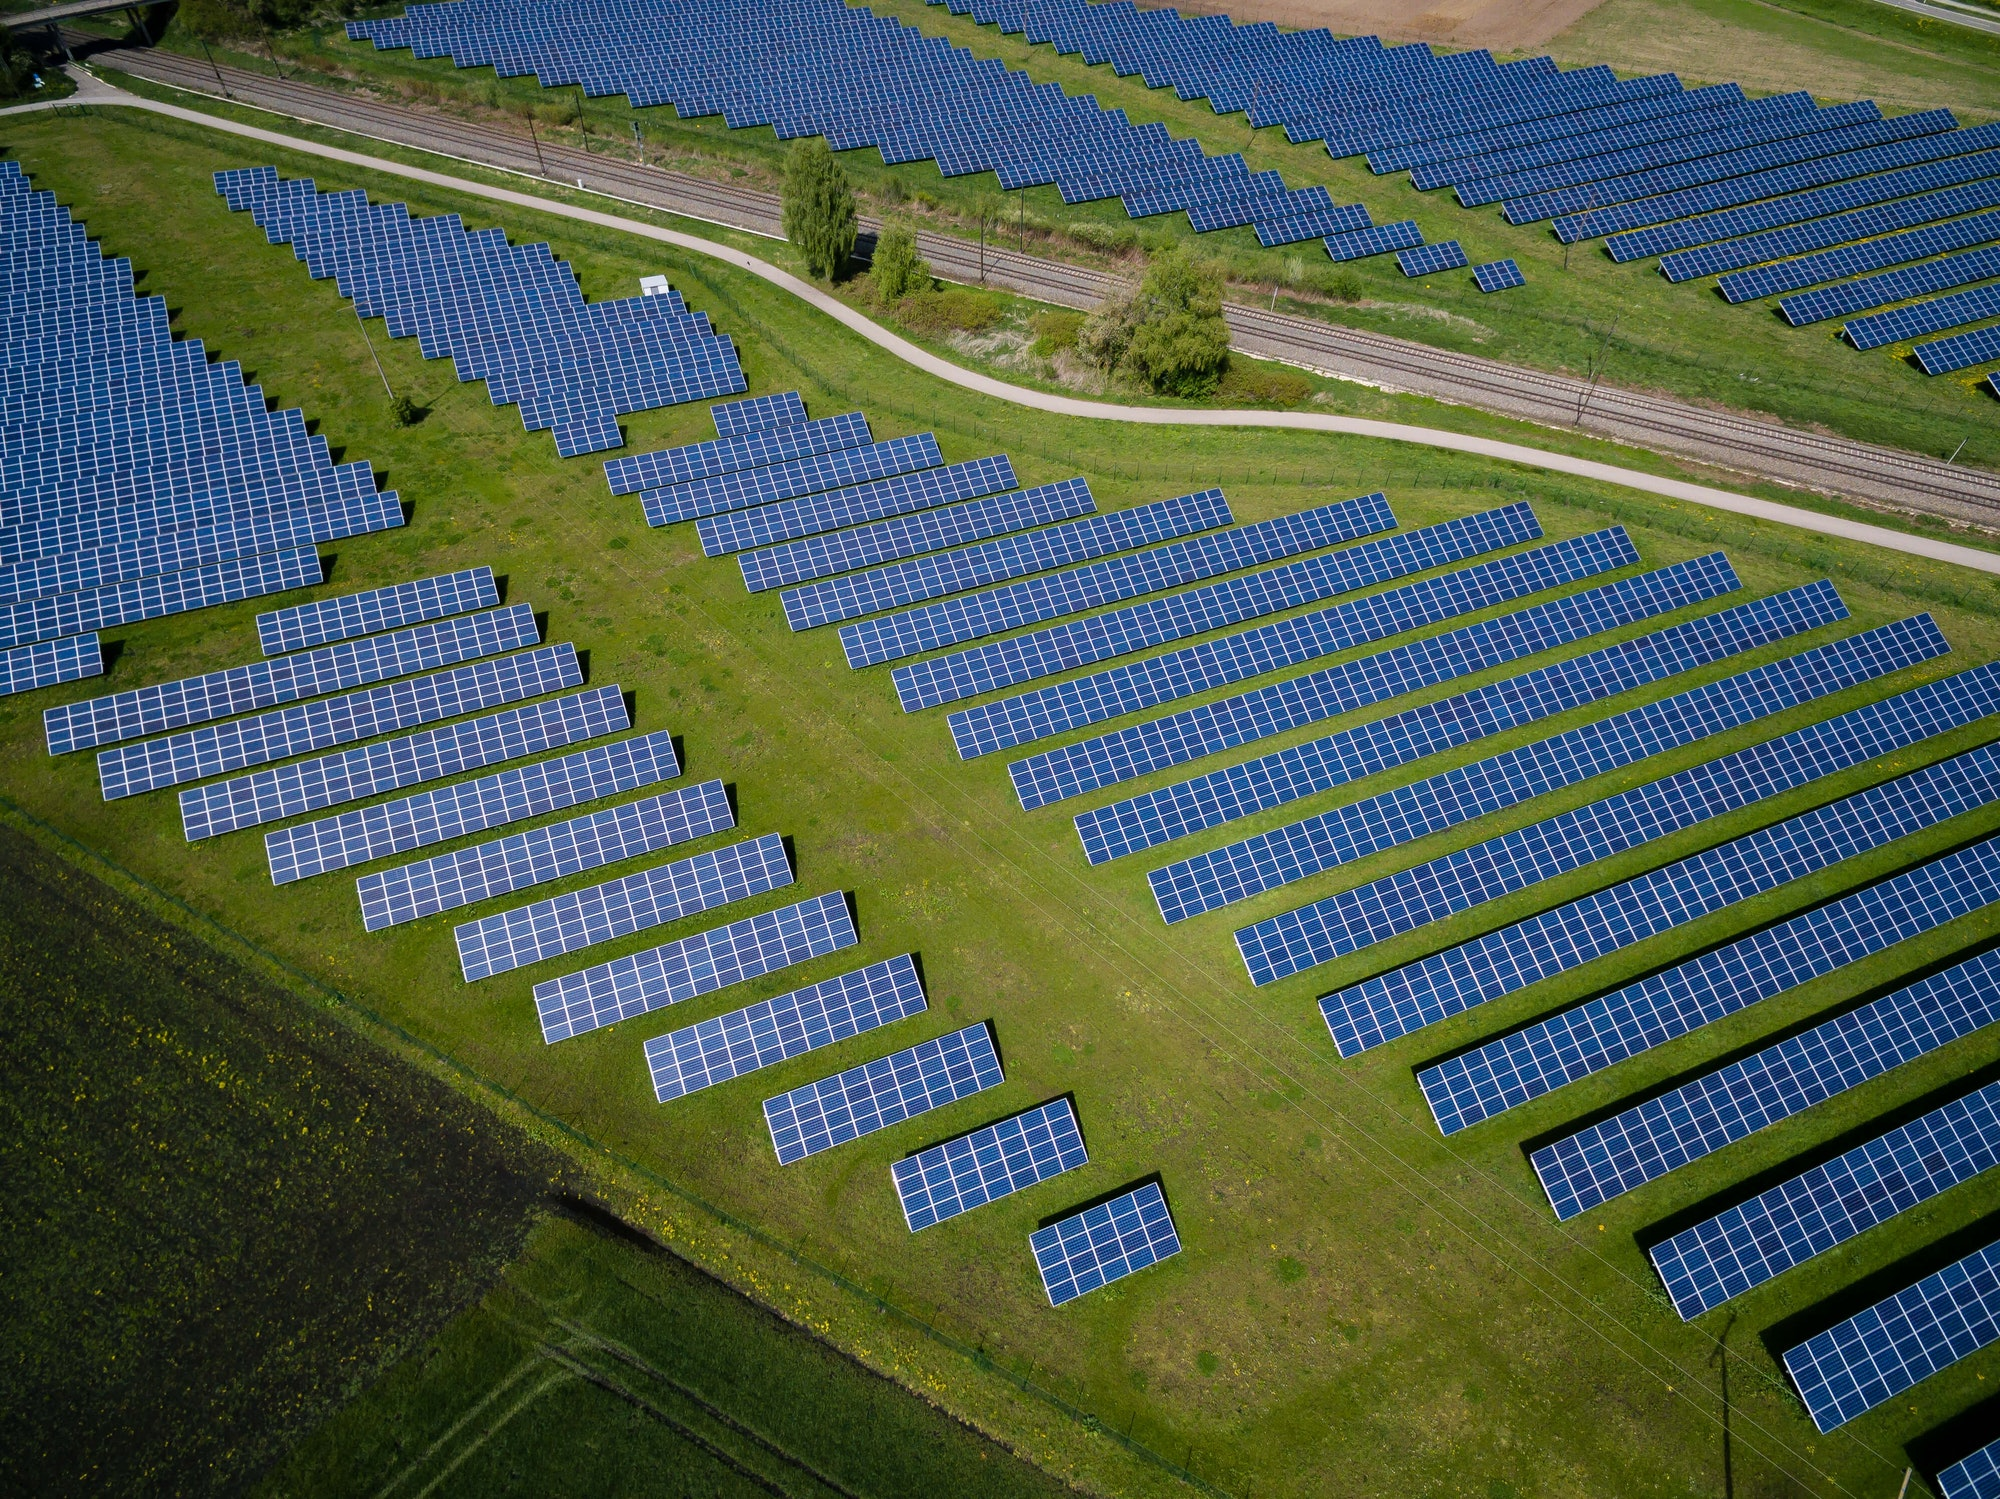 Solar panels across a field.